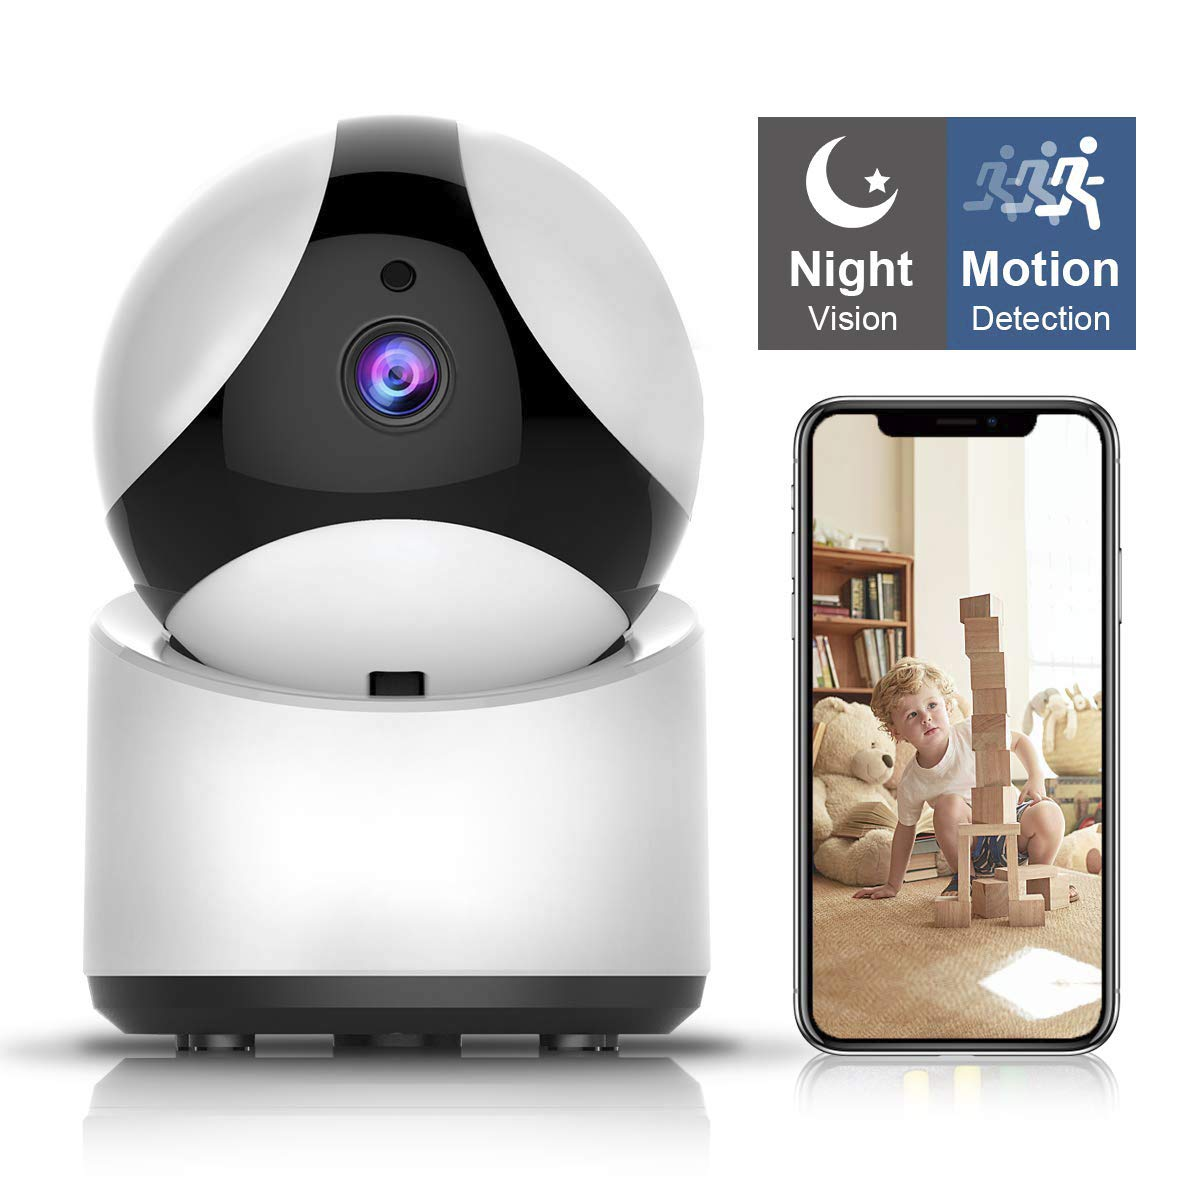 Wireless Security Camera, UOKOO HD Home Security Surveillance WiFi Camera with Motion Detection, Pan/Tilt, Night Vision and Two Way Audio, Baby/Pet Monitor and Nanny Cam by SportMonster